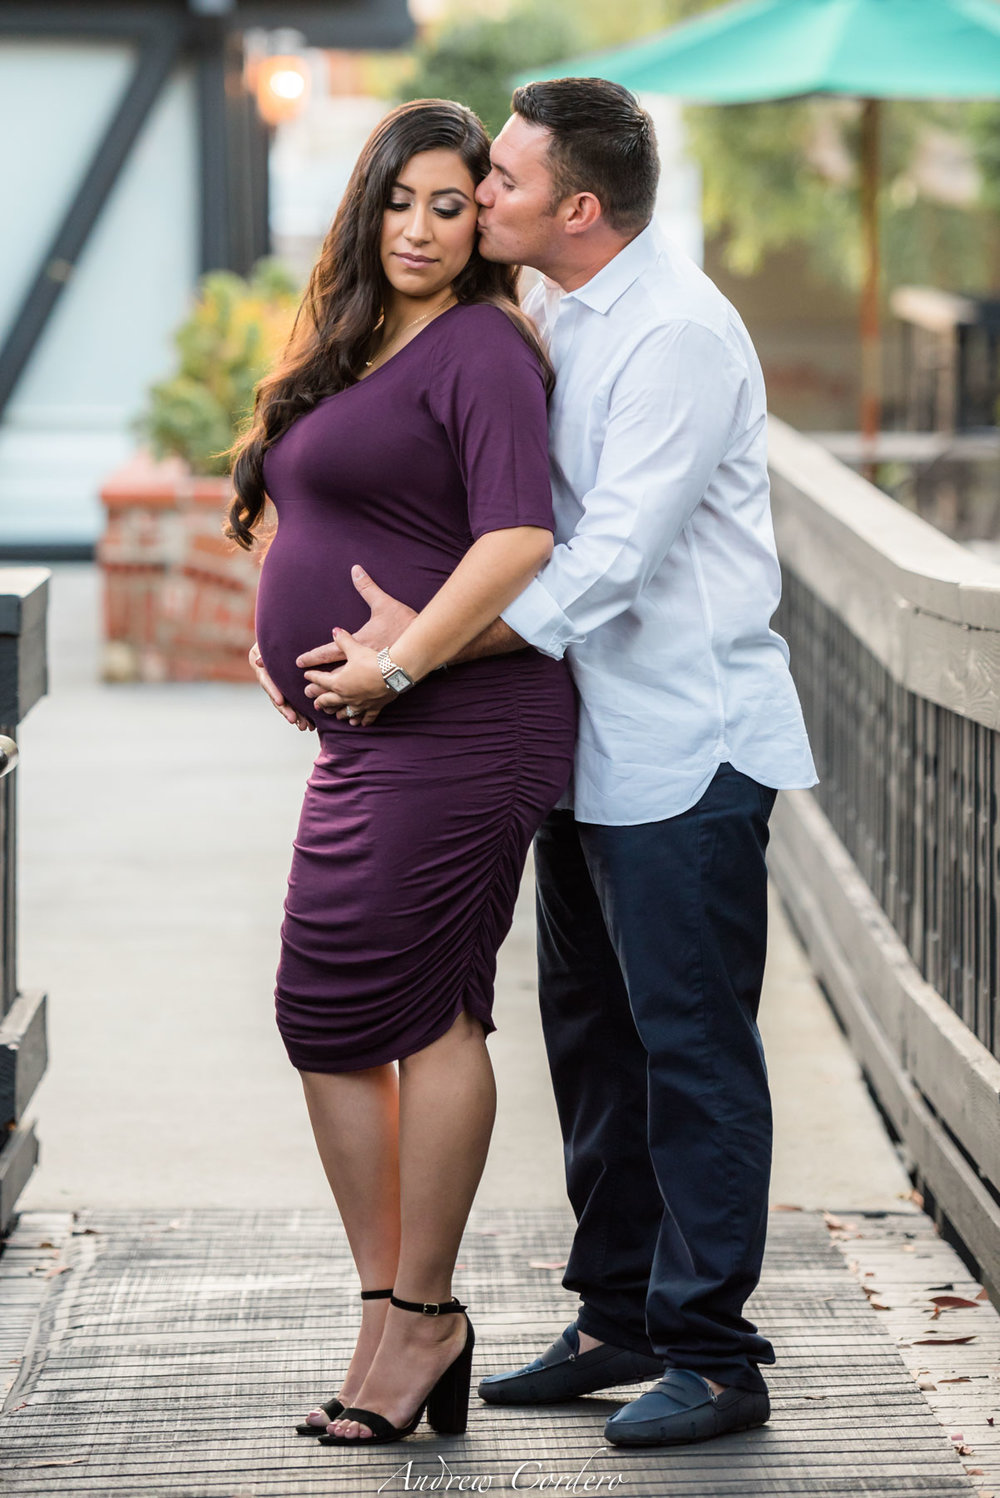 Laguna-Beach-Maternity-session-Lily-and-Erick-9884.JPG